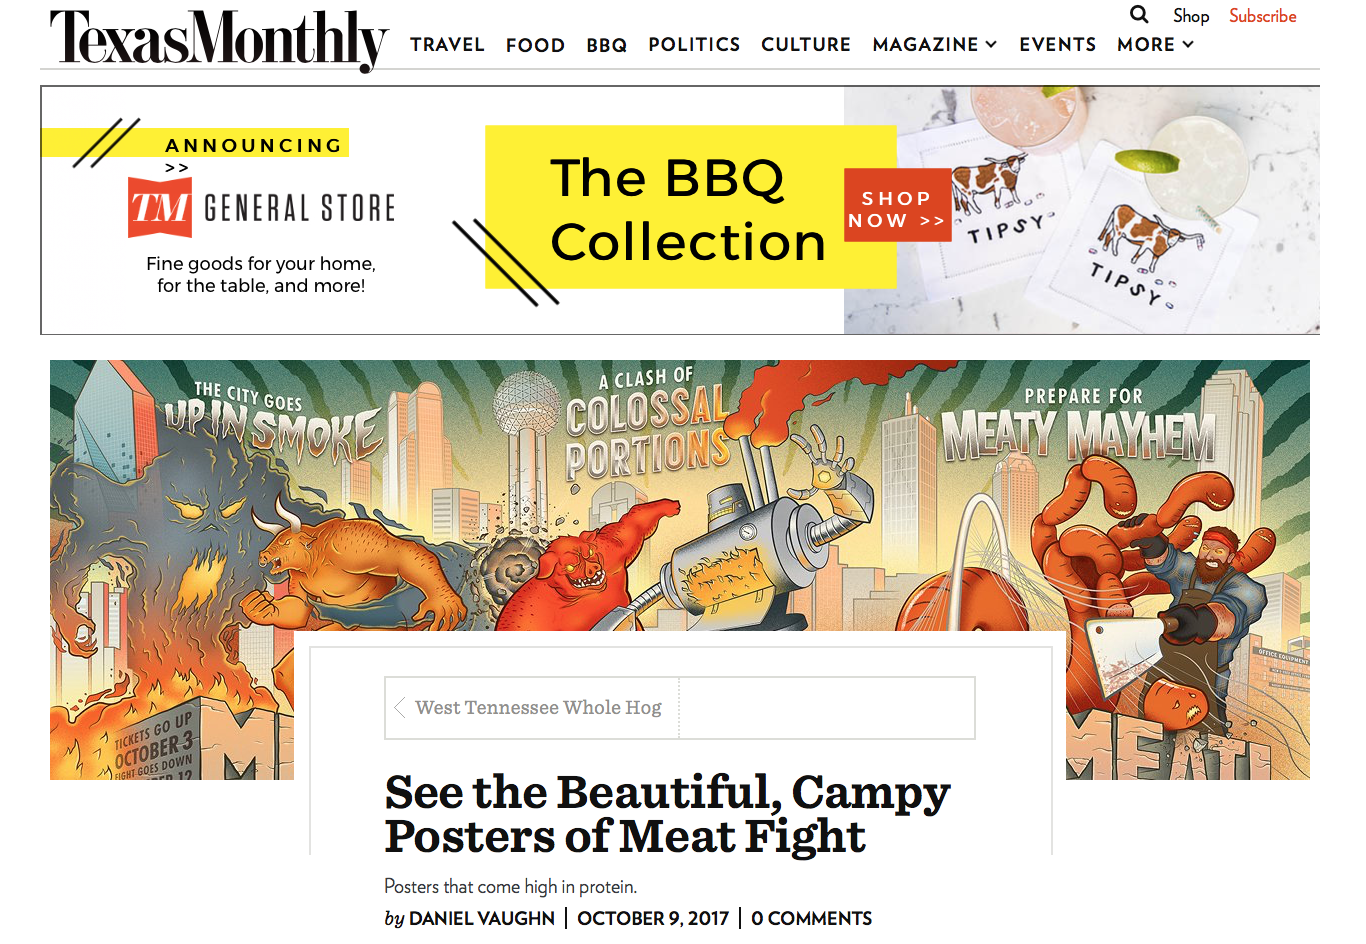 Recognizing Greatness and Meatness in Texas Monthly